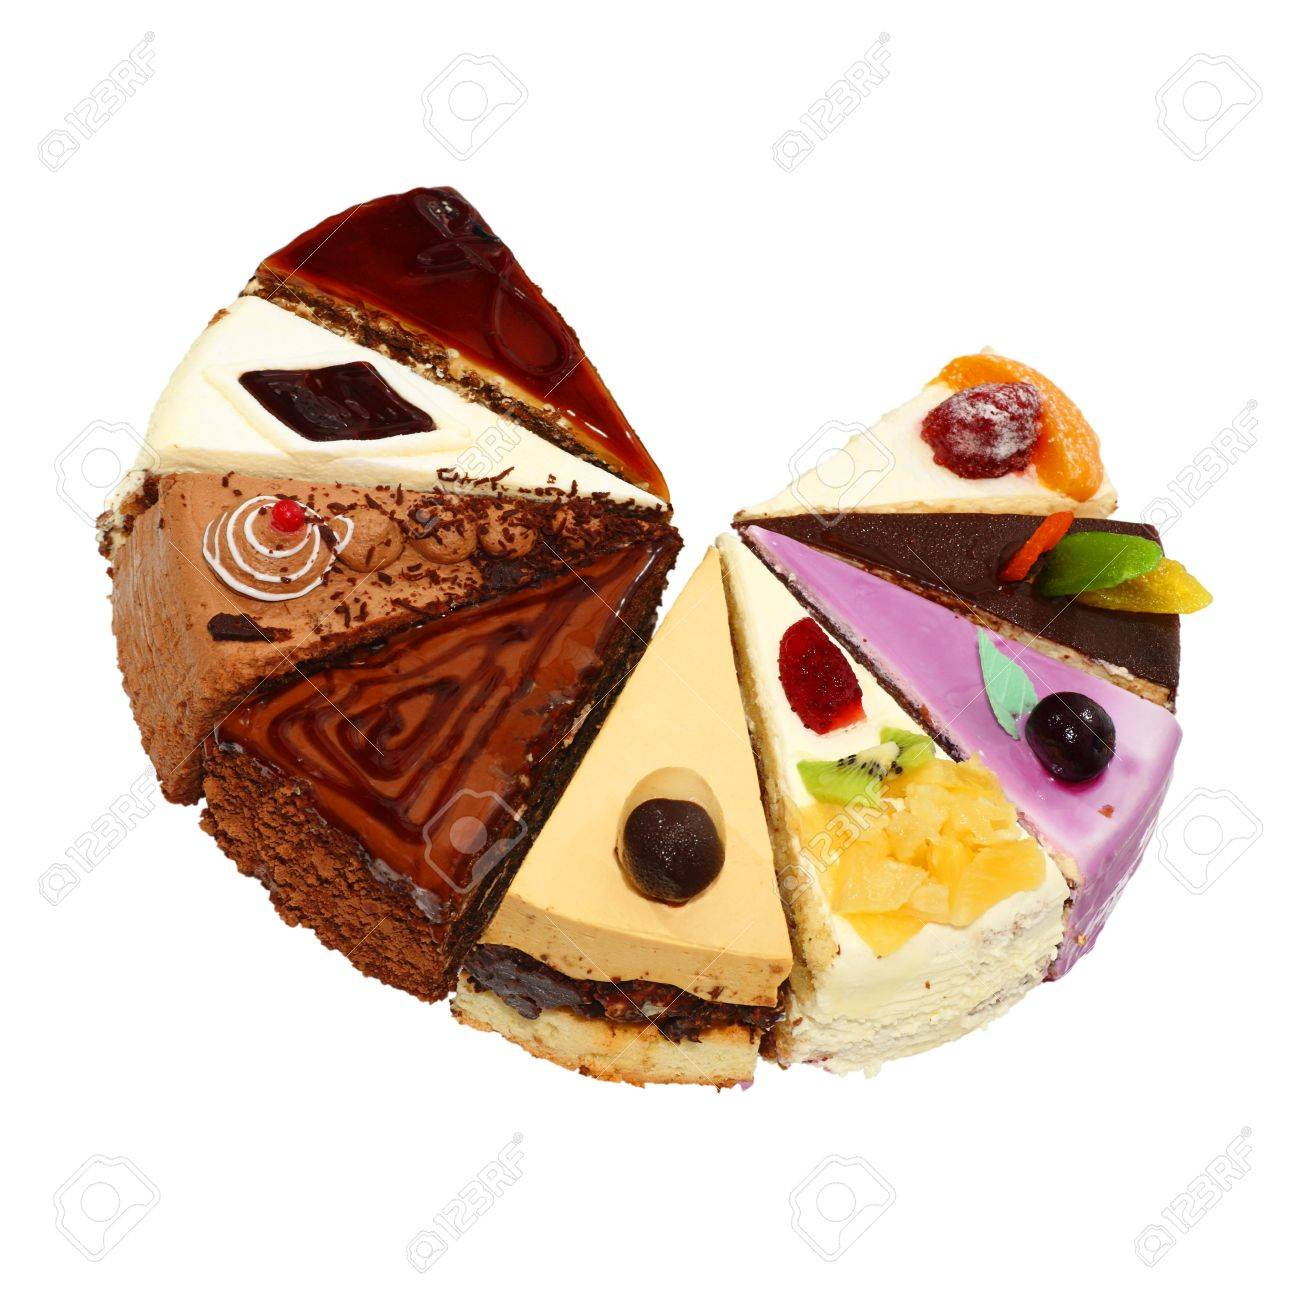 Nine different pieces of cake. Isolated on white background. Stock Photo - 10064716